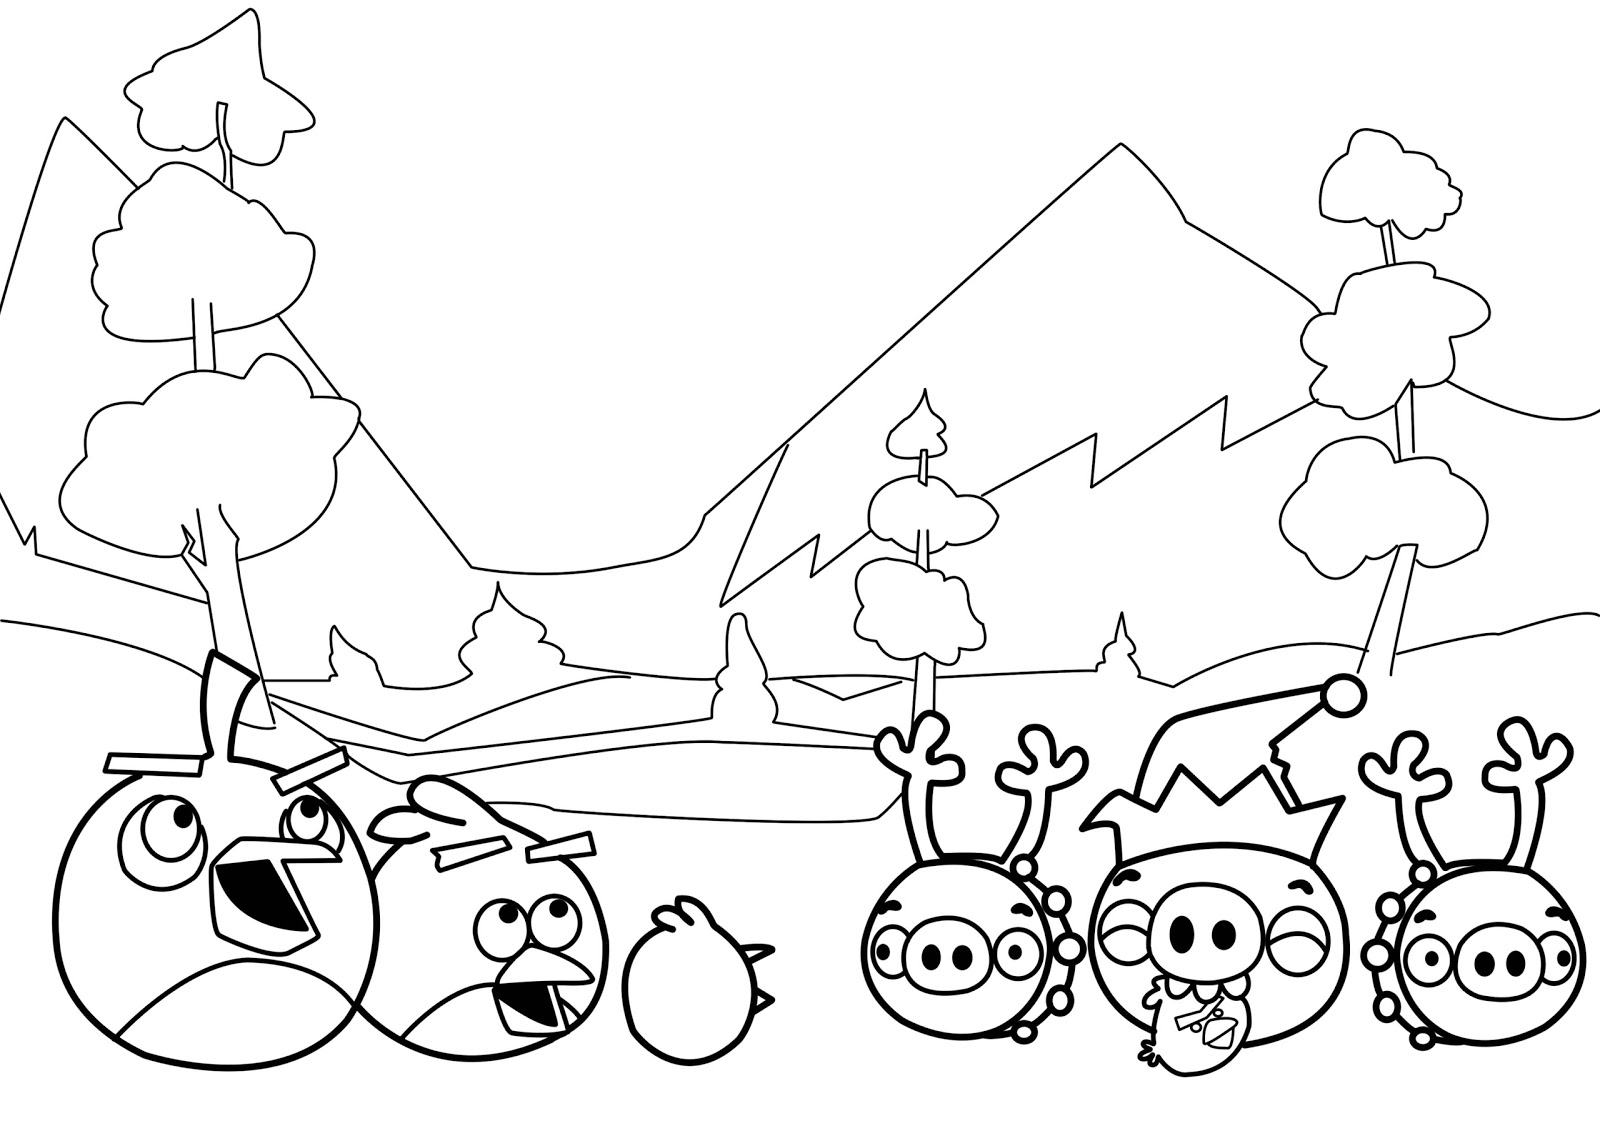 angry birds 2 coloring pages free printable coloring pages cool coloring pages angry coloring 2 angry pages birds